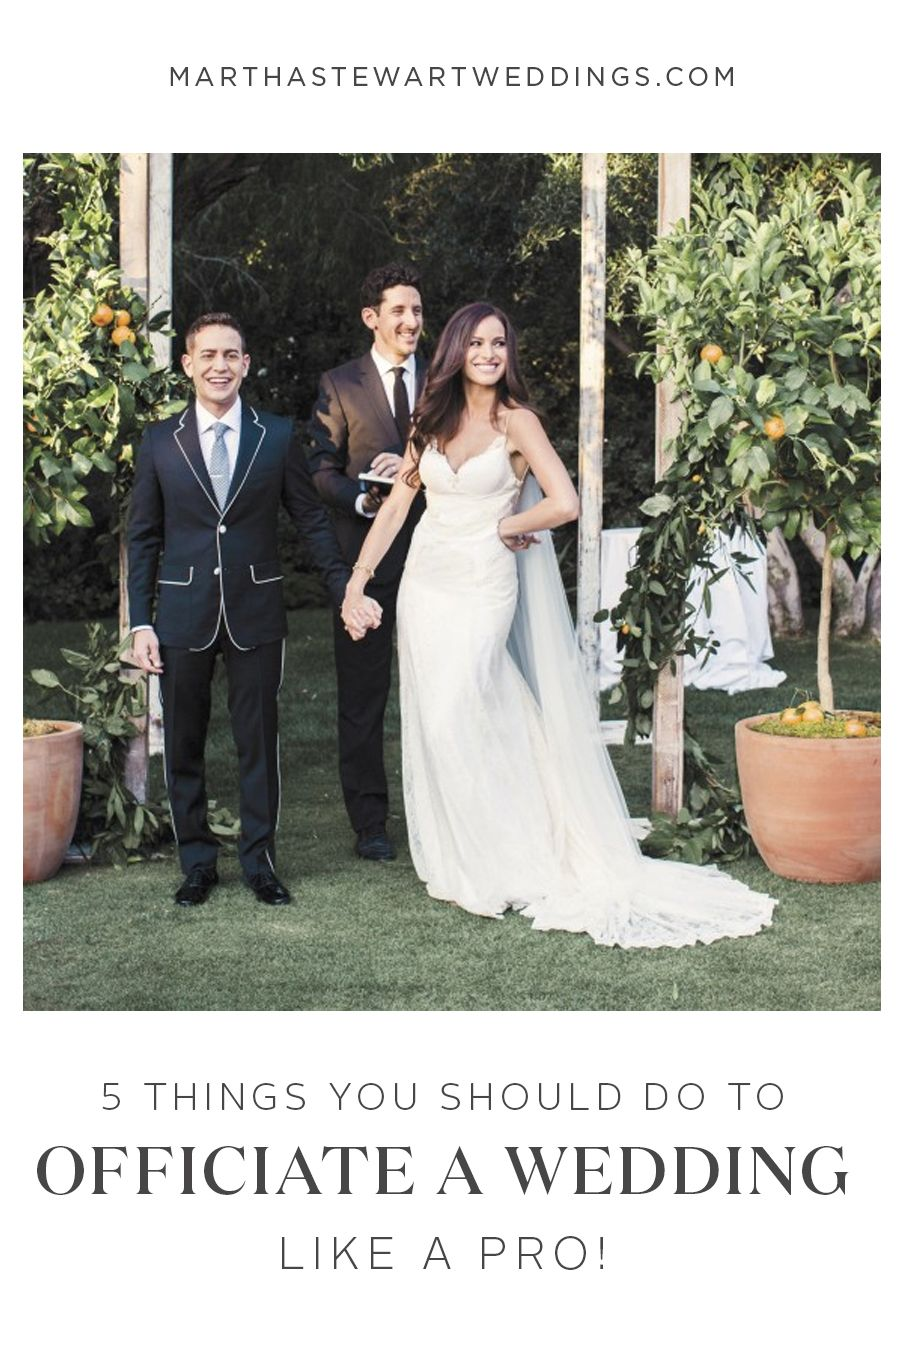 5 Things You Should Do To Officiate A Wedding Like A Pro Wedding Officiant Script Wedding Ceremony Script Wedding Officiant Business